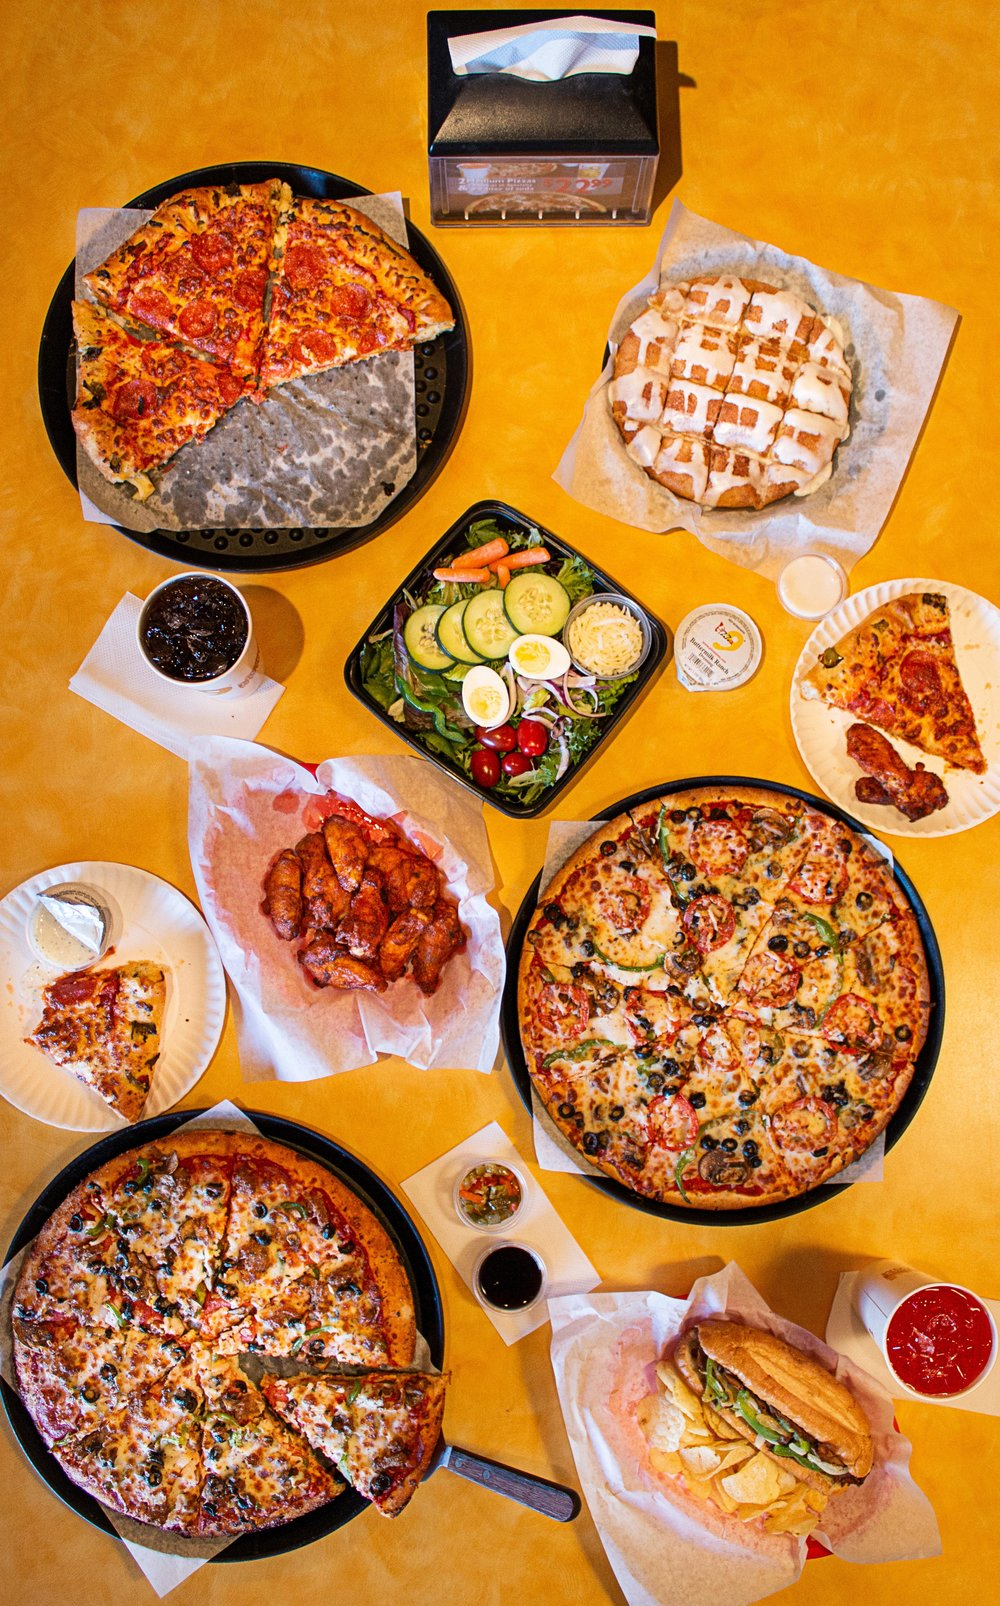 Pizza 9 Dinner-  Party planning? Let us help! Check out our great party pack pizza deals!